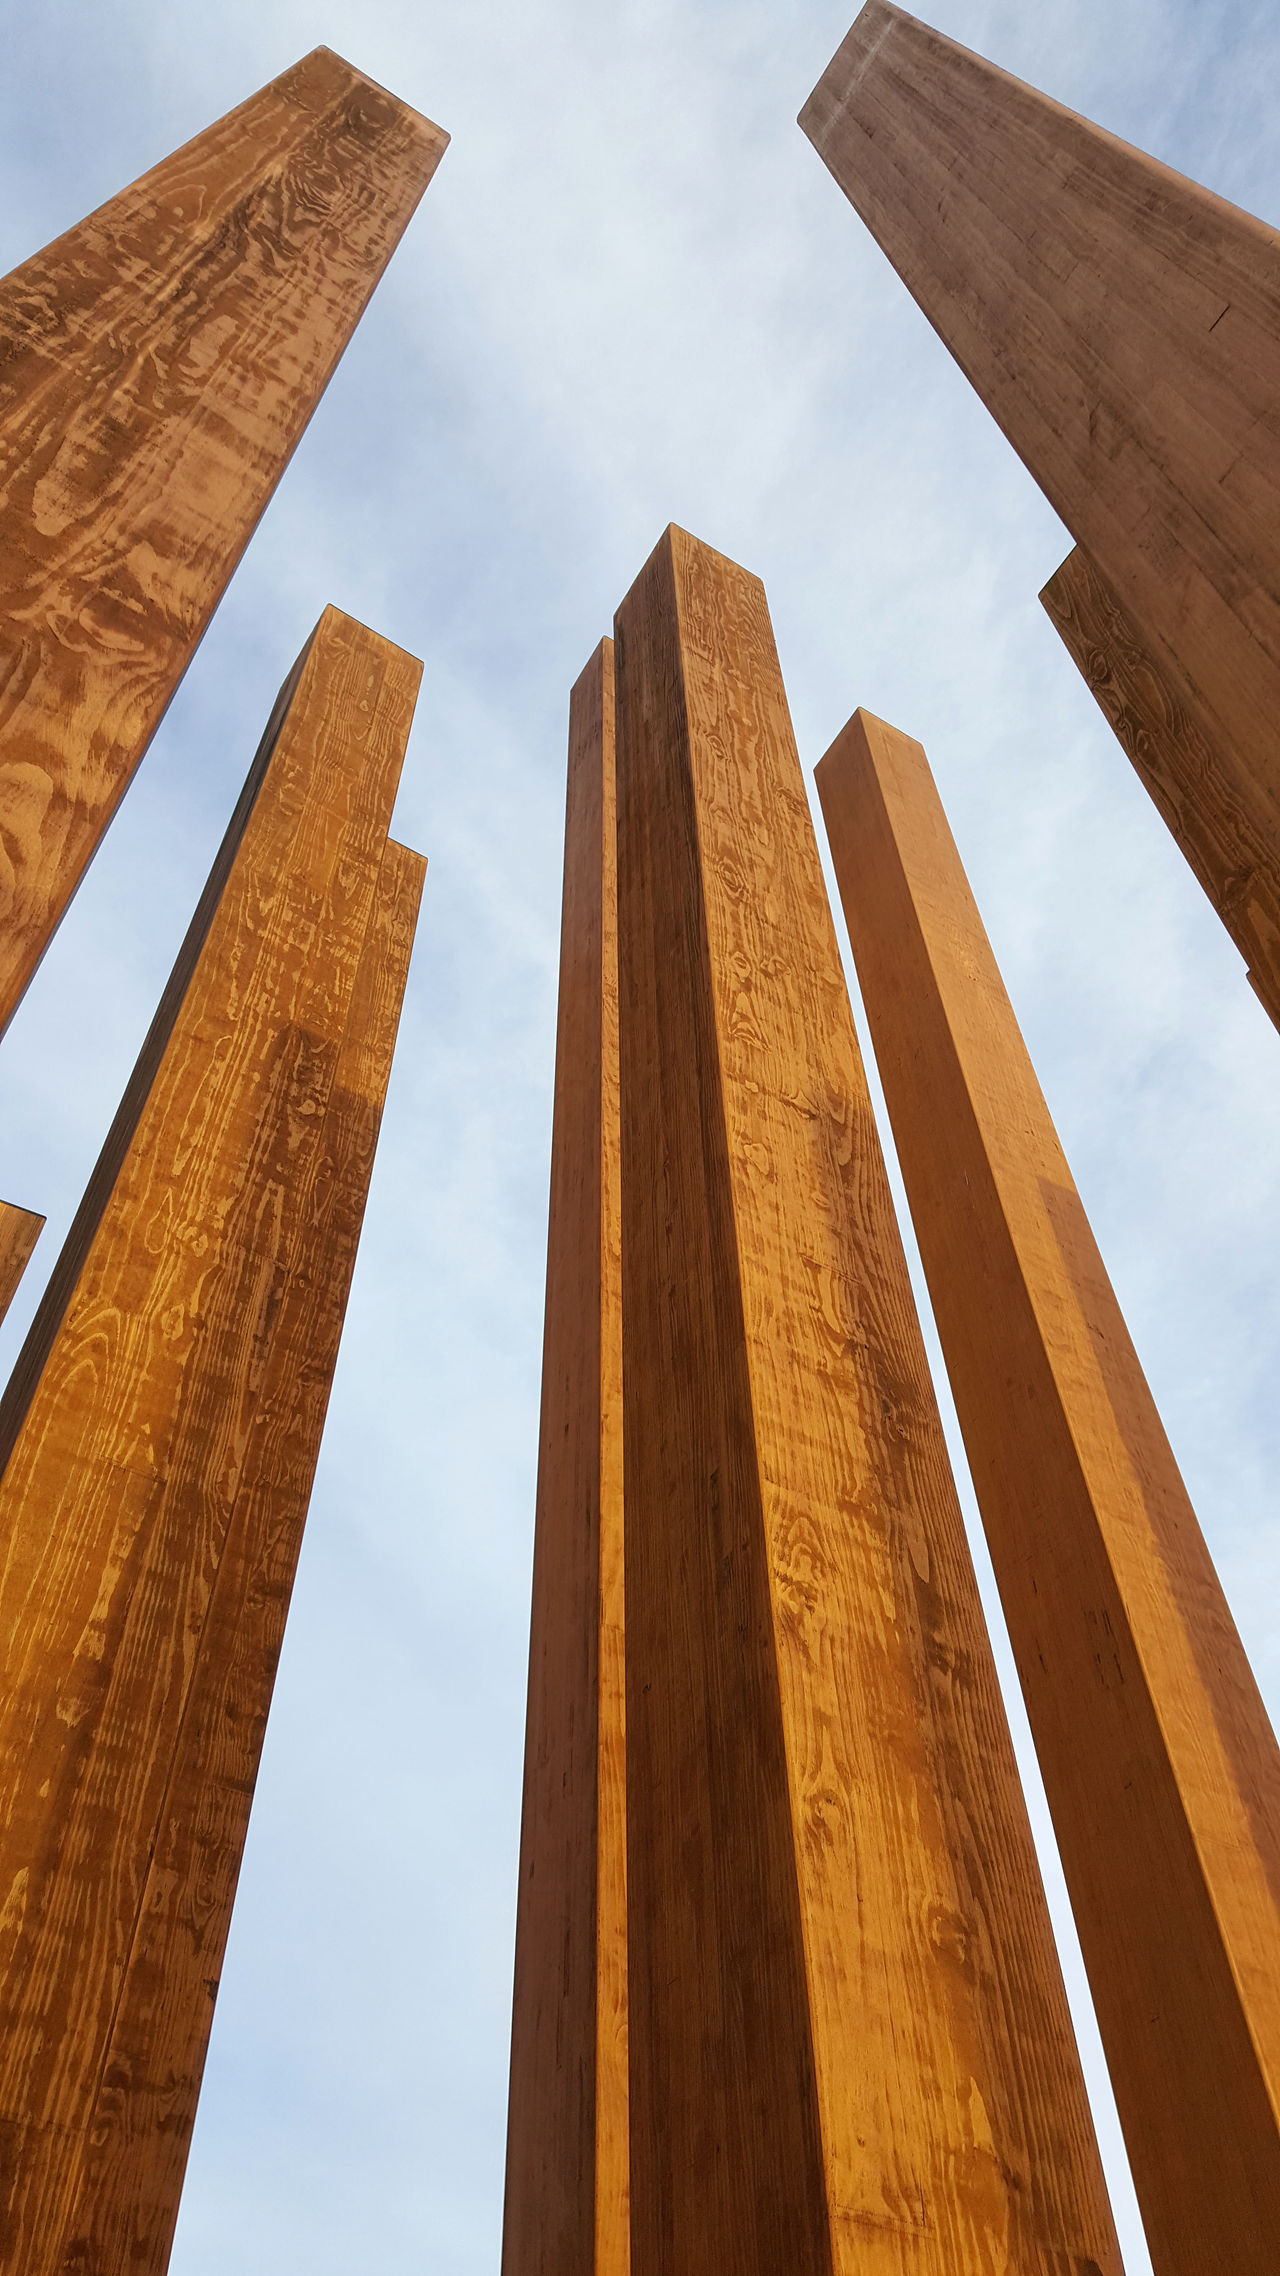 Art Day Dublin City University Low Angle View Outdoors Sculpture Symbol Wooden Post